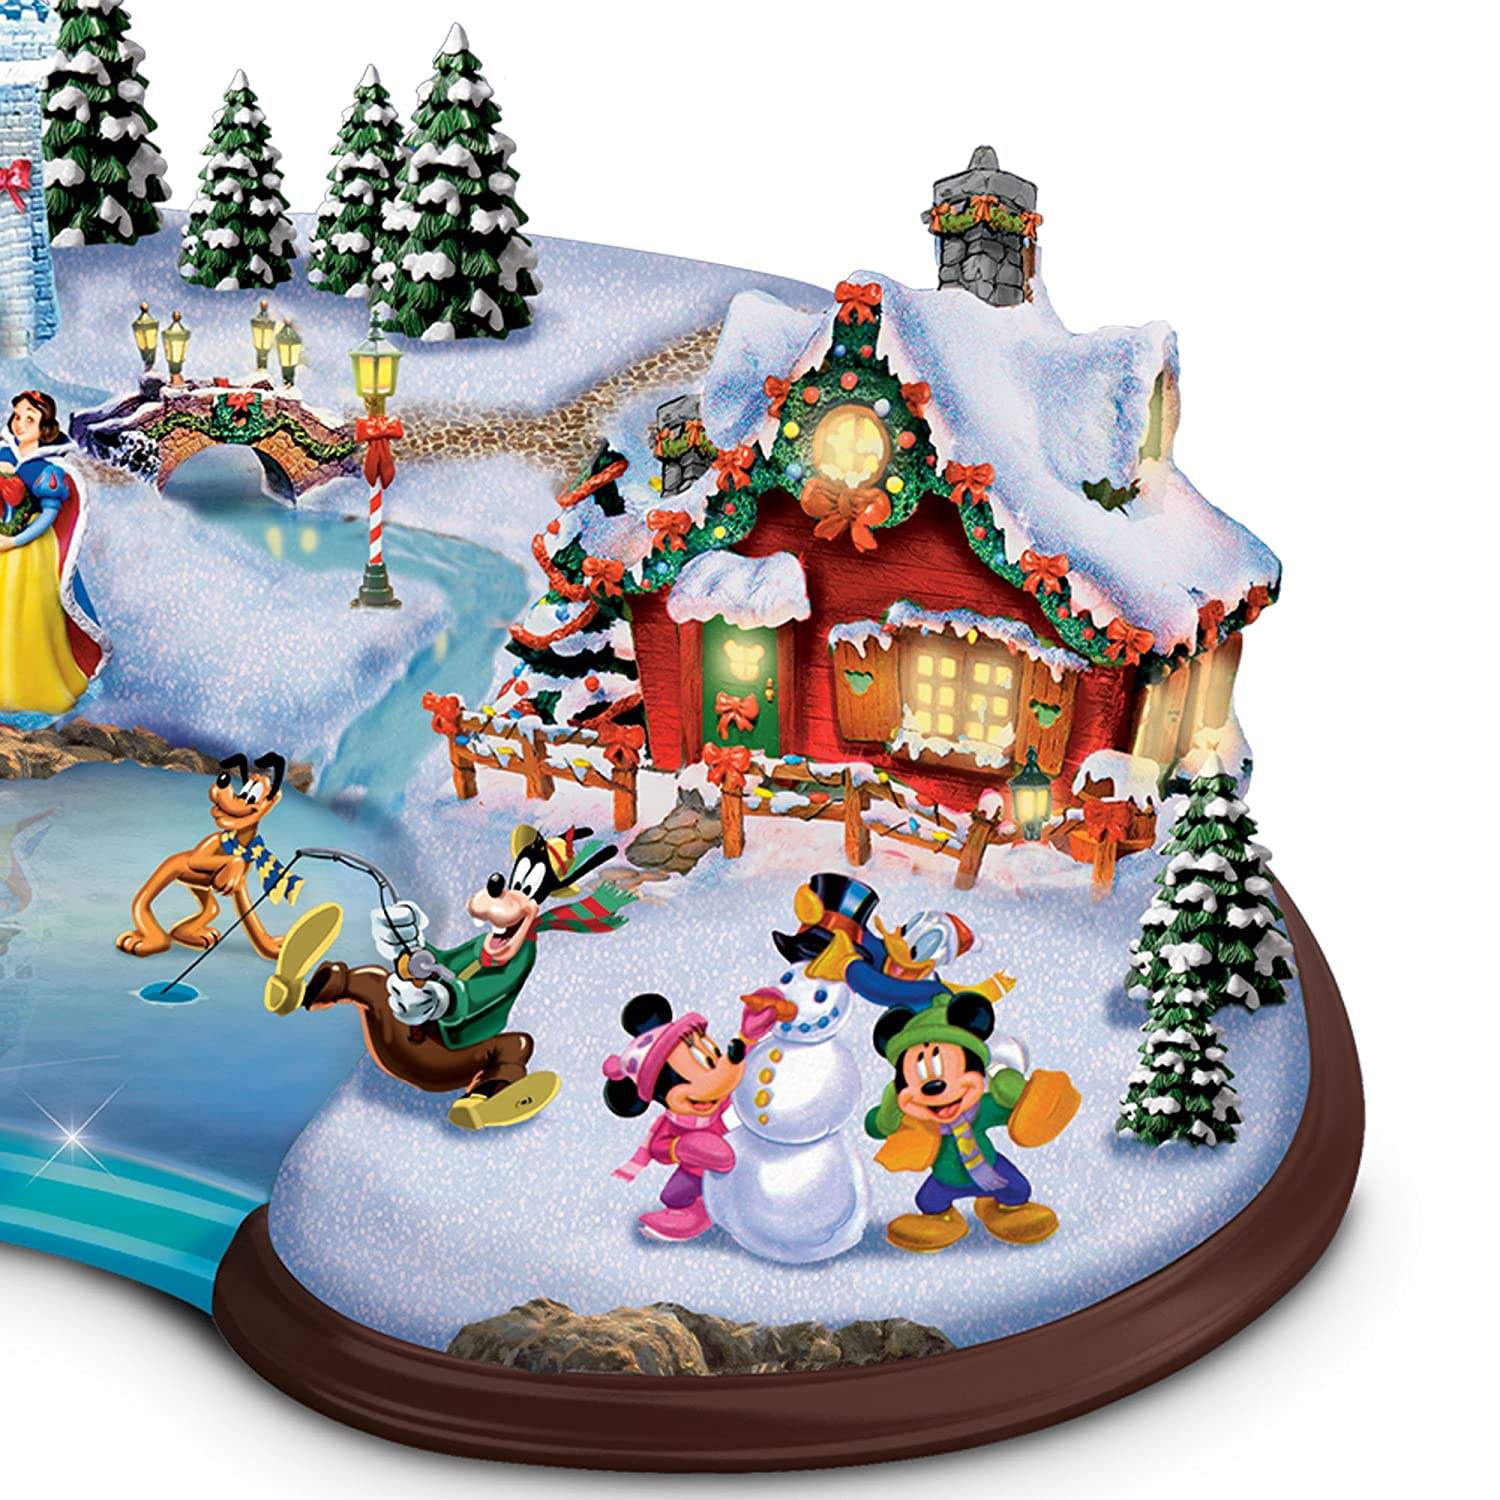 The Bradford Exchange Christmas Cove  Disney Characters Sculpture